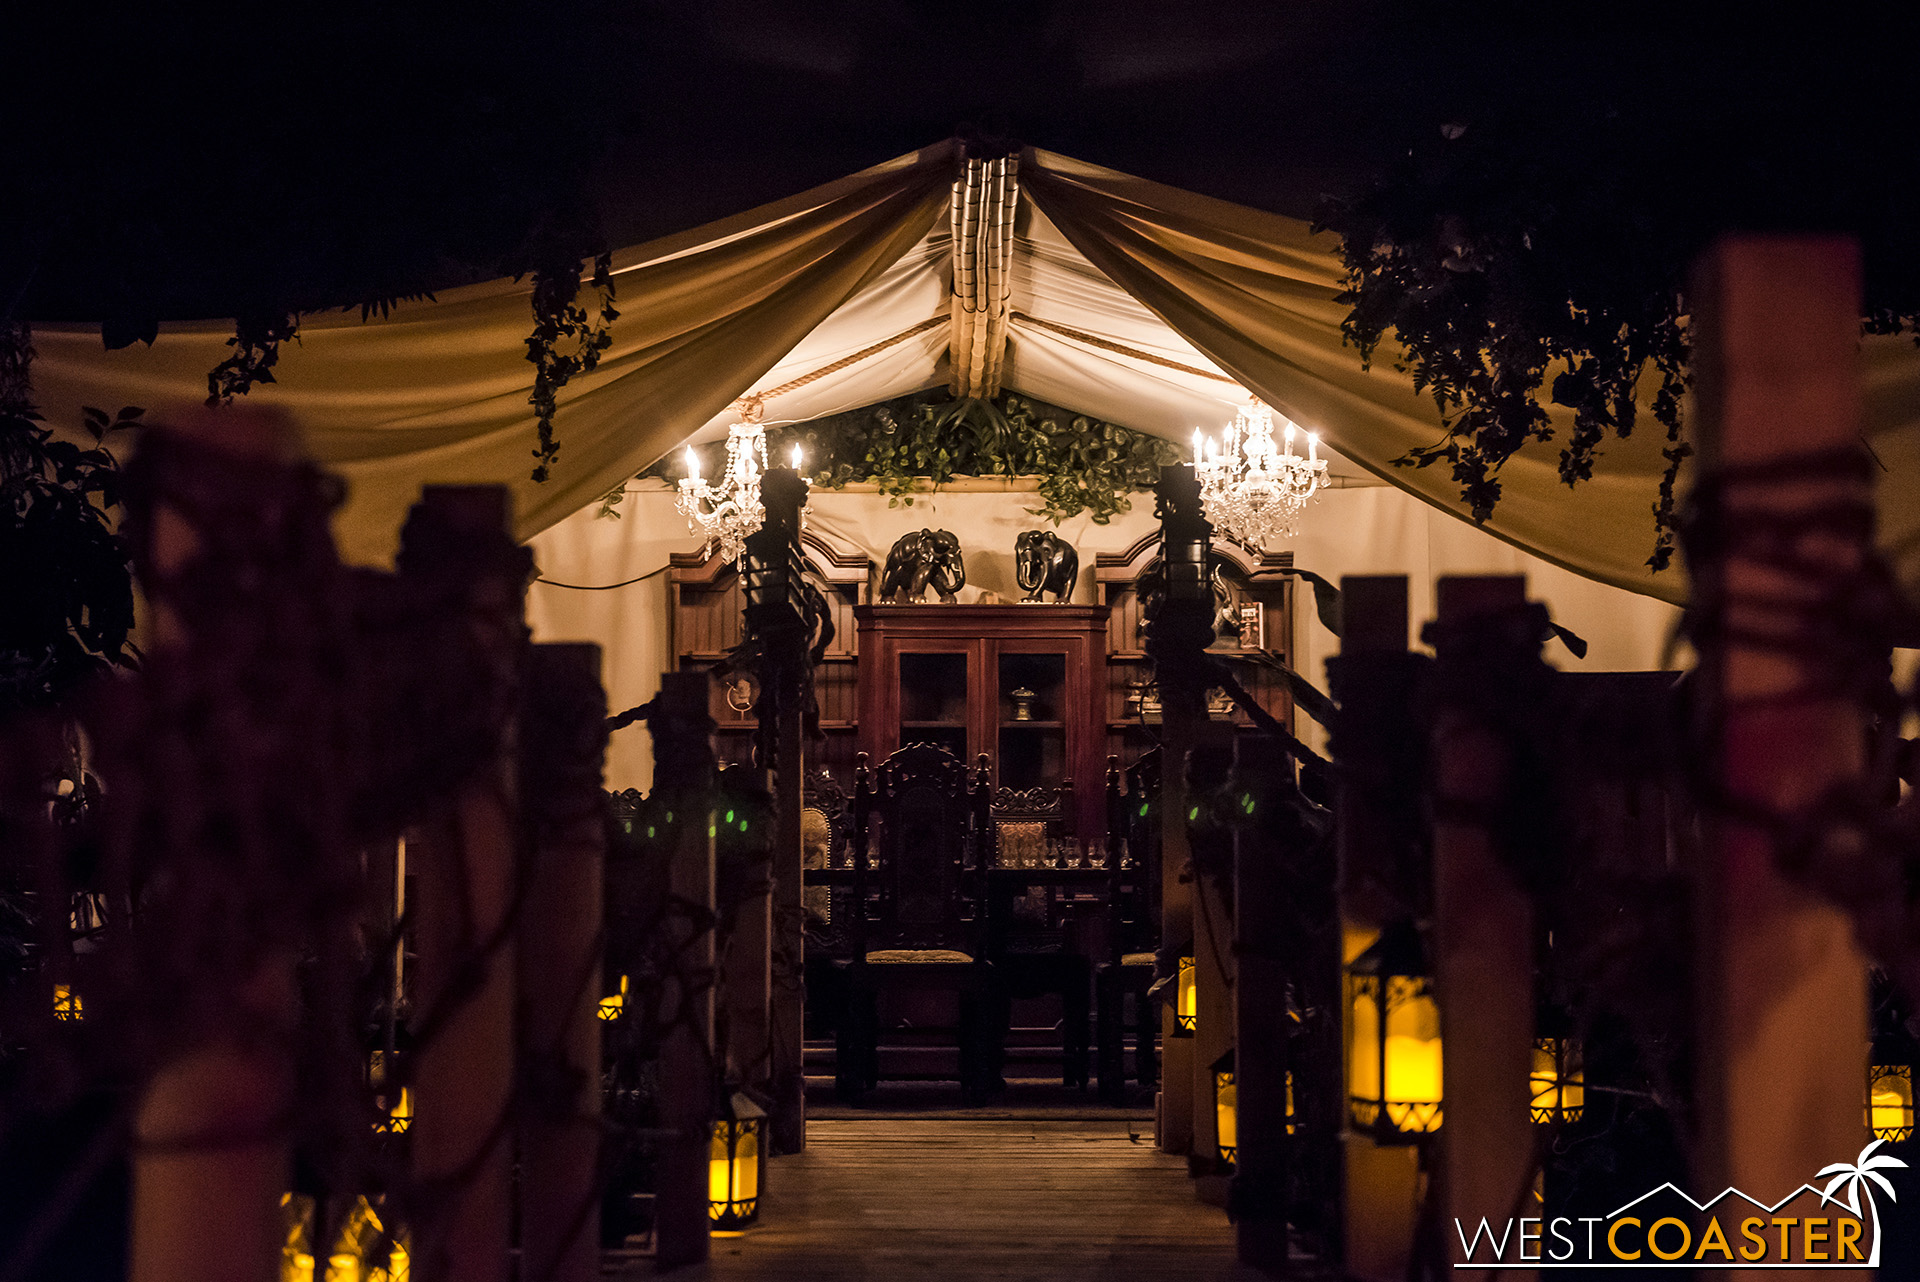 Graze into the domain of Moreau-inspired tent.